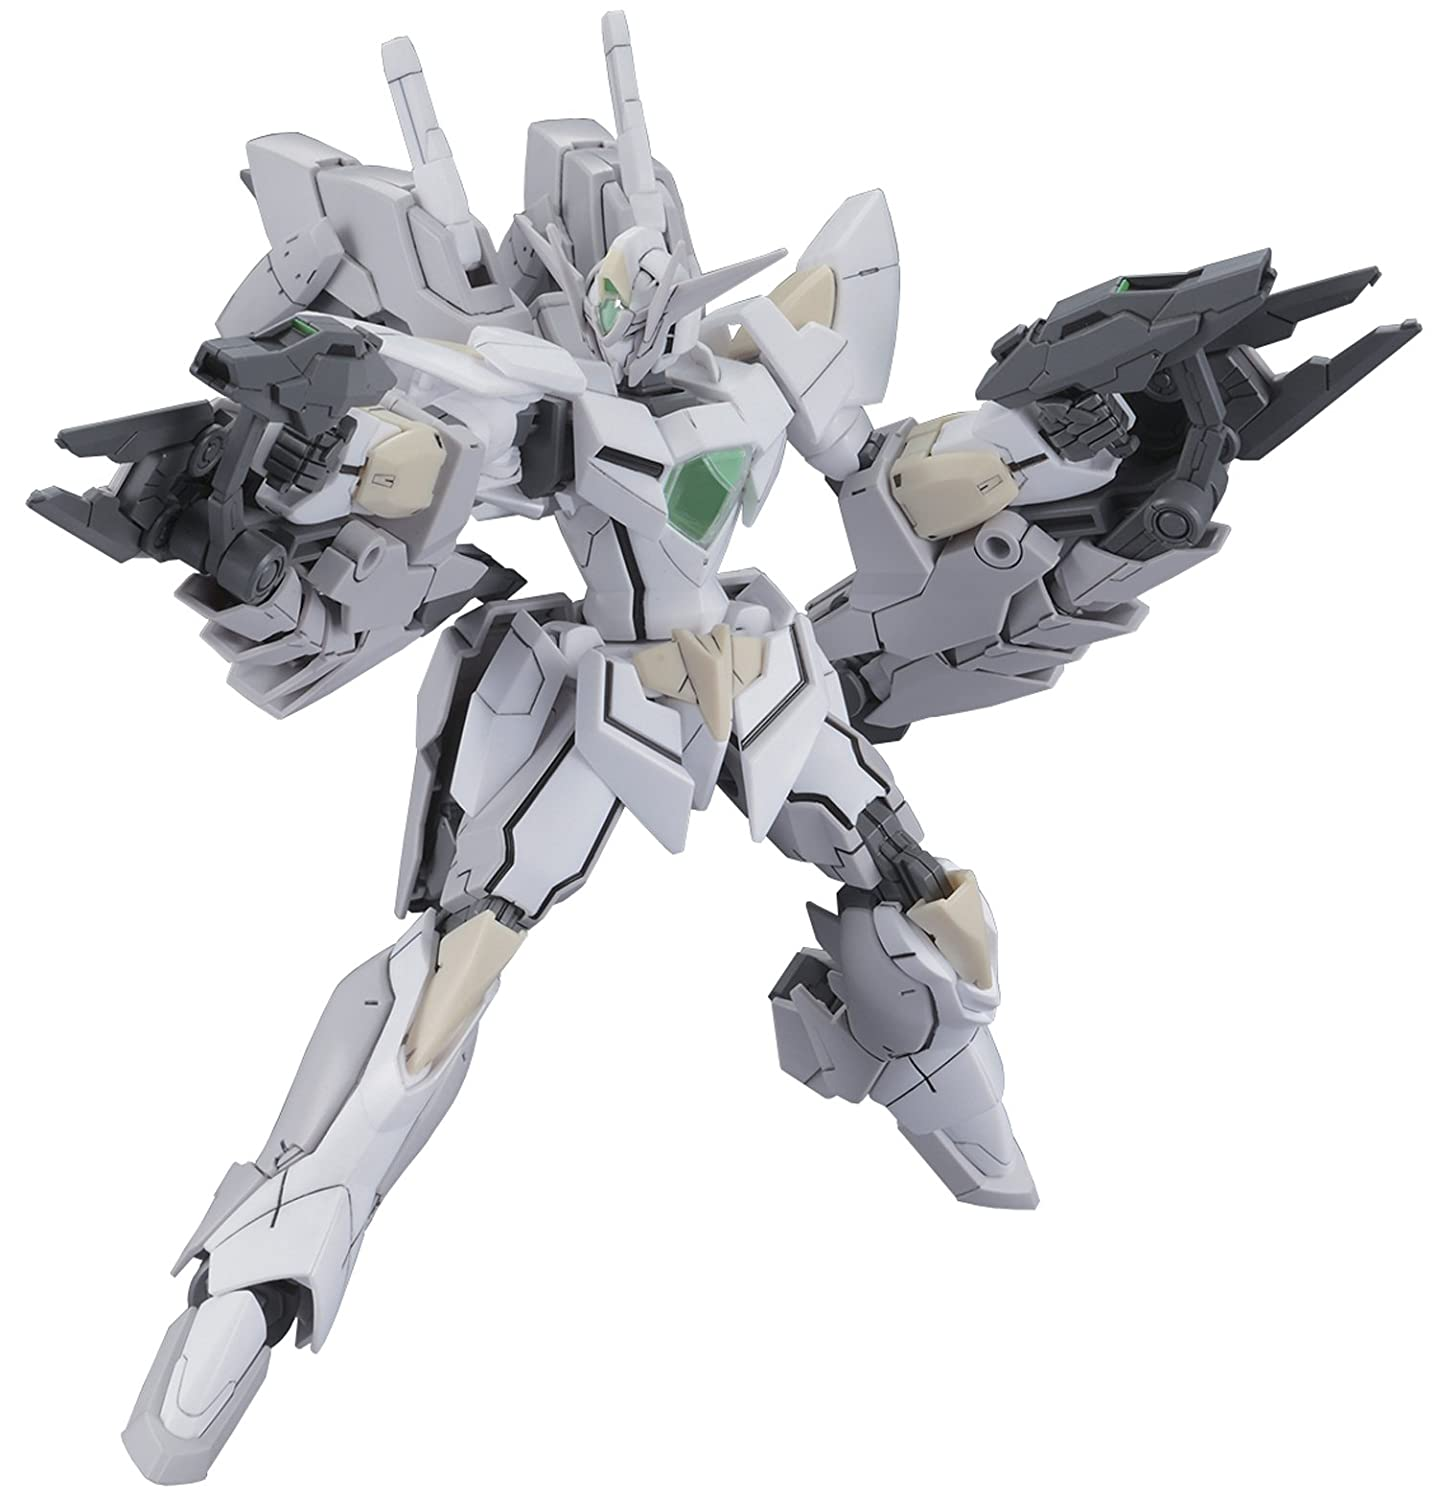 Gundam model figurine